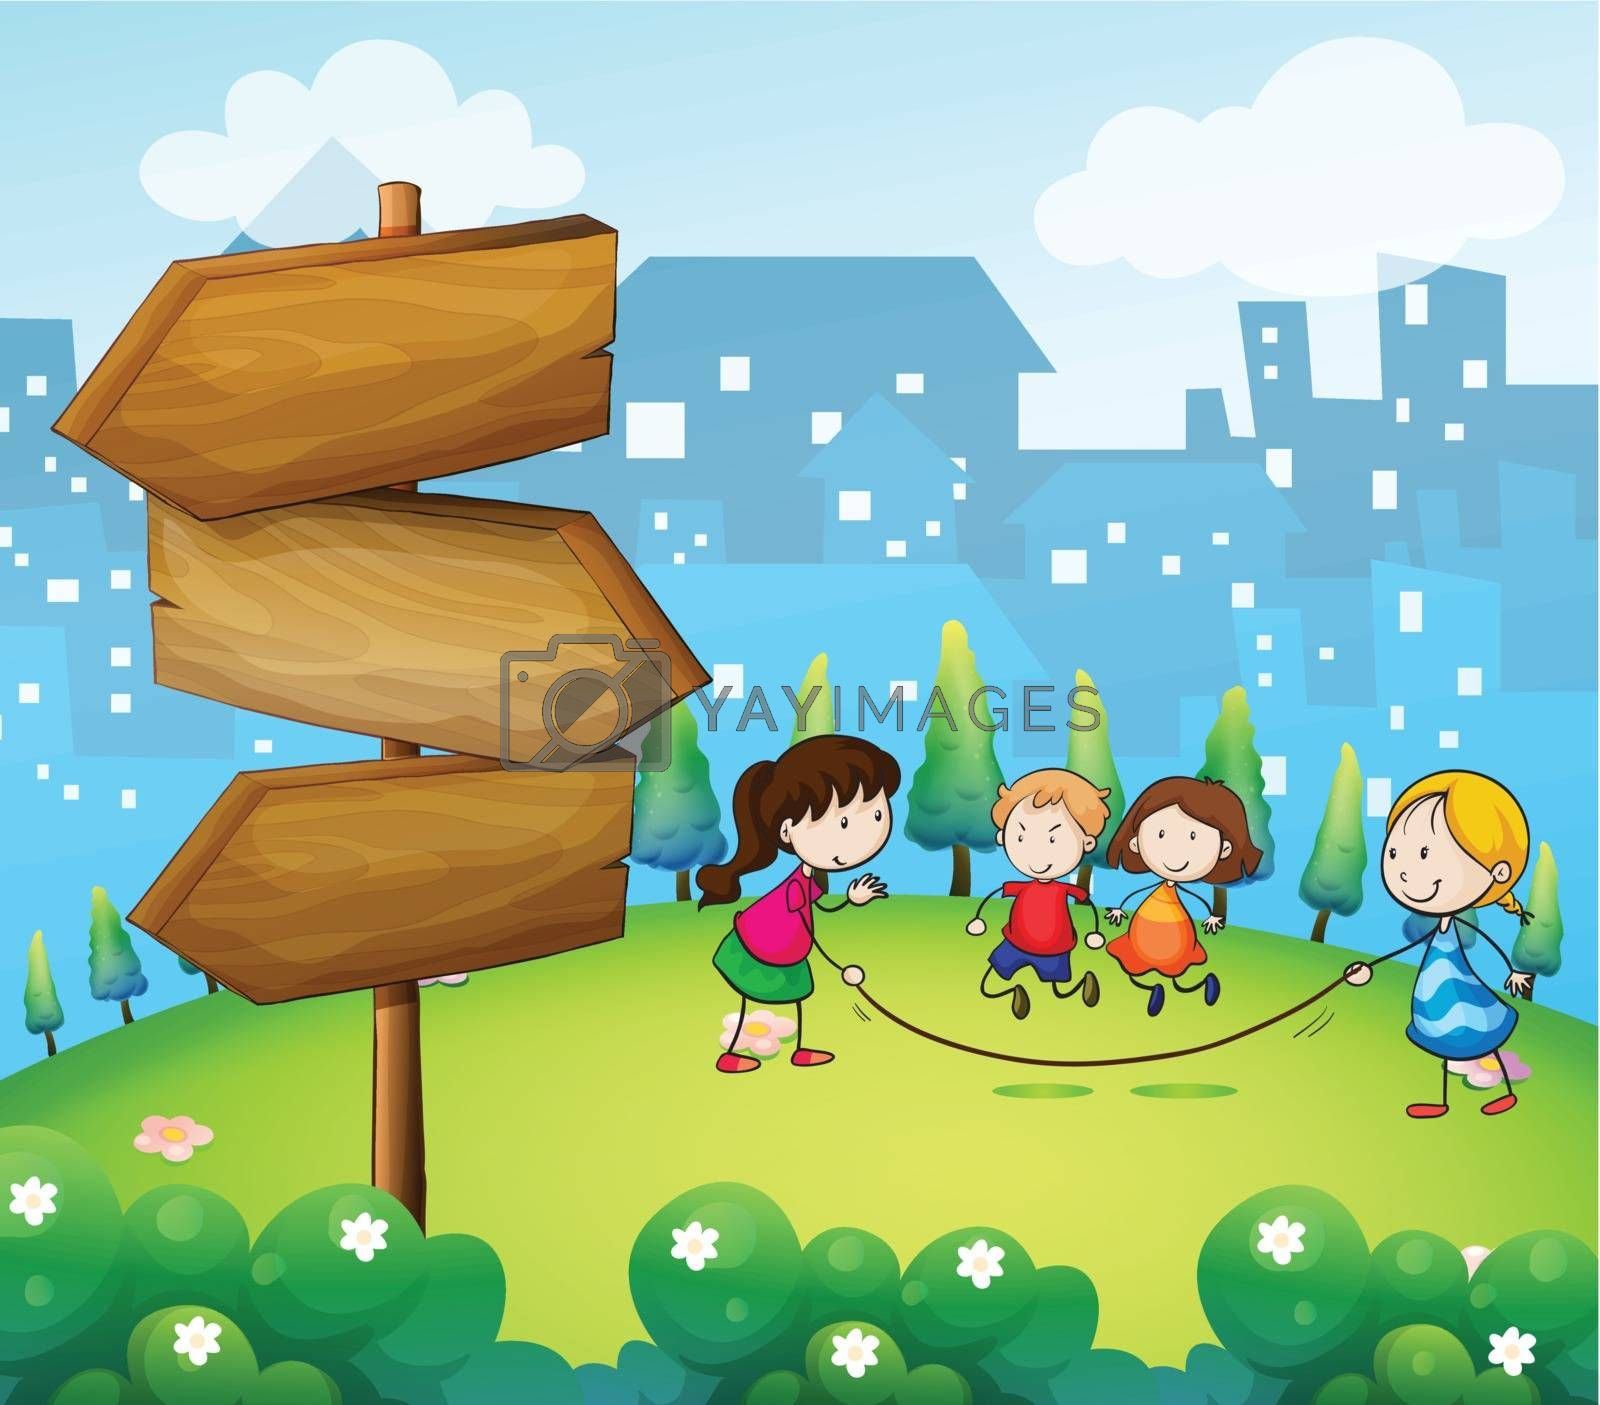 Illustration of the kids playing in the hills with a wooden signboard